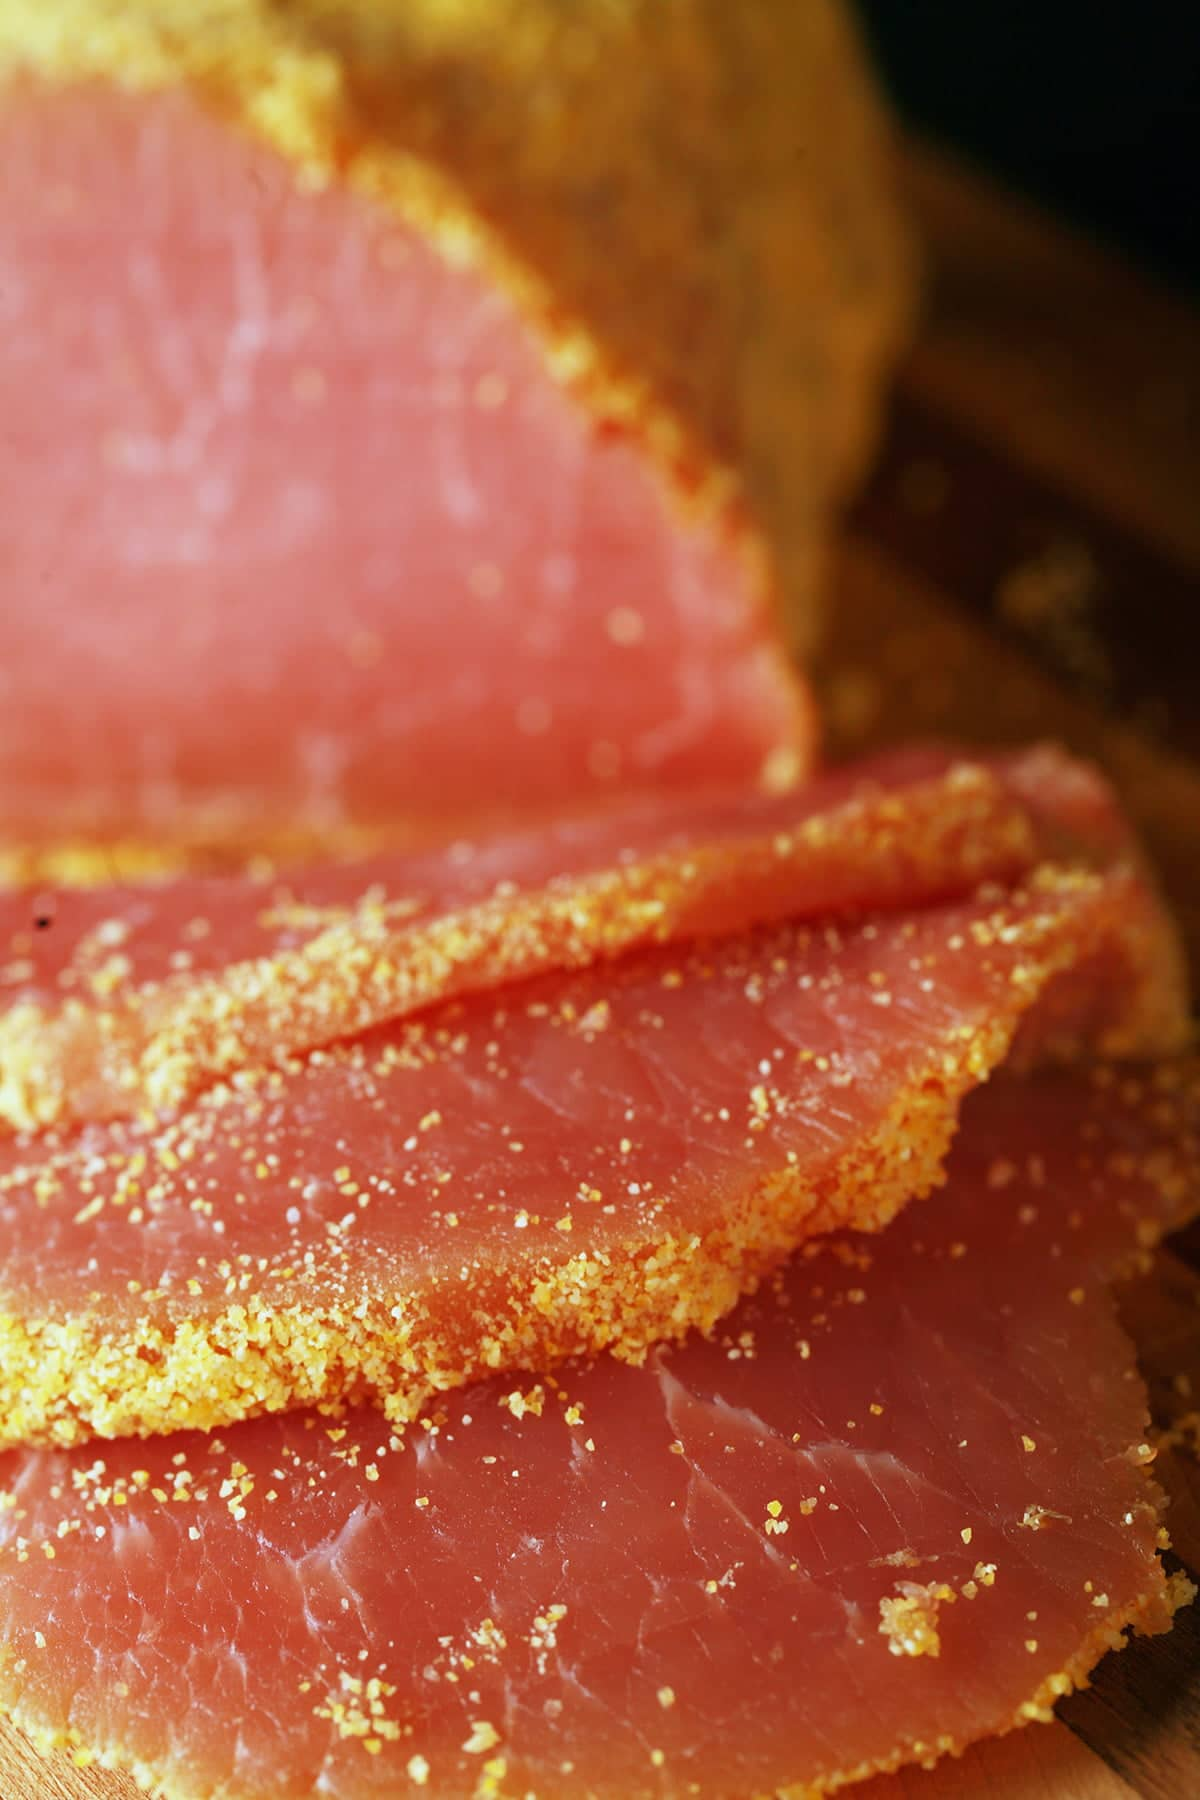 A cured loin of pork that has been rolled in cornmeal and sliced - proper bacon!